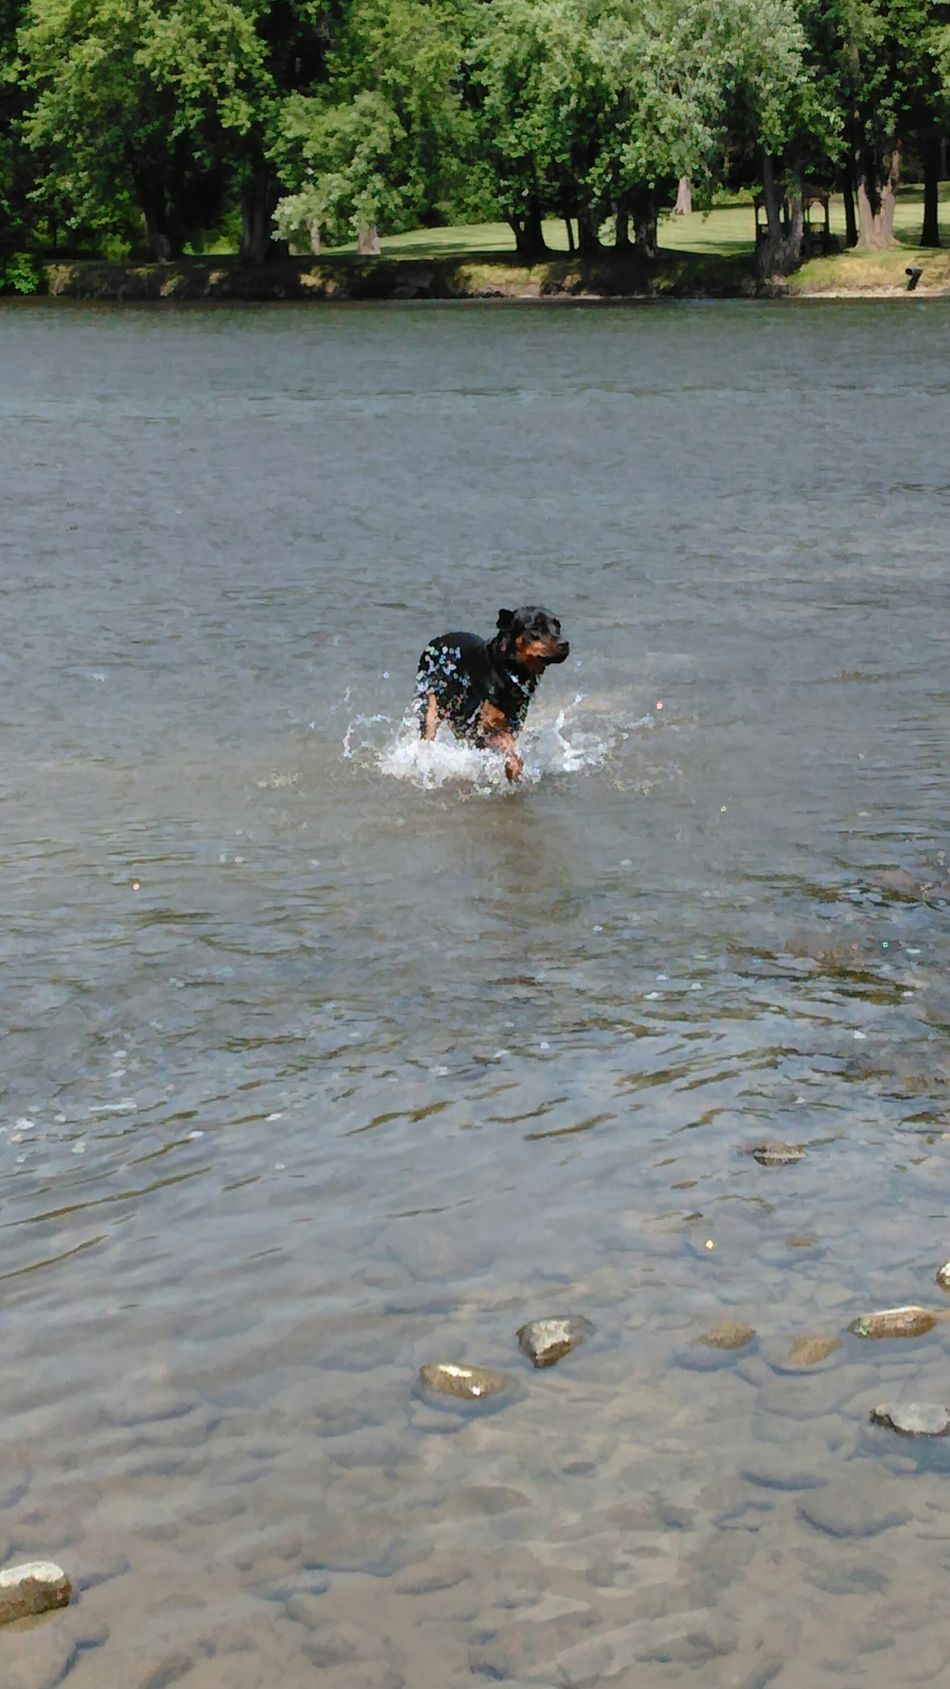 Splish splash... Check This Out Playing In The Water Allegheny River Onlygodcouldcreatethis Sawonmyadventure Very Inspired By My Muse No Edit/no Filter Rottweilerlove Rottweiler My Buddy Ceasar Beating The Summer Heat Rottweilerlife